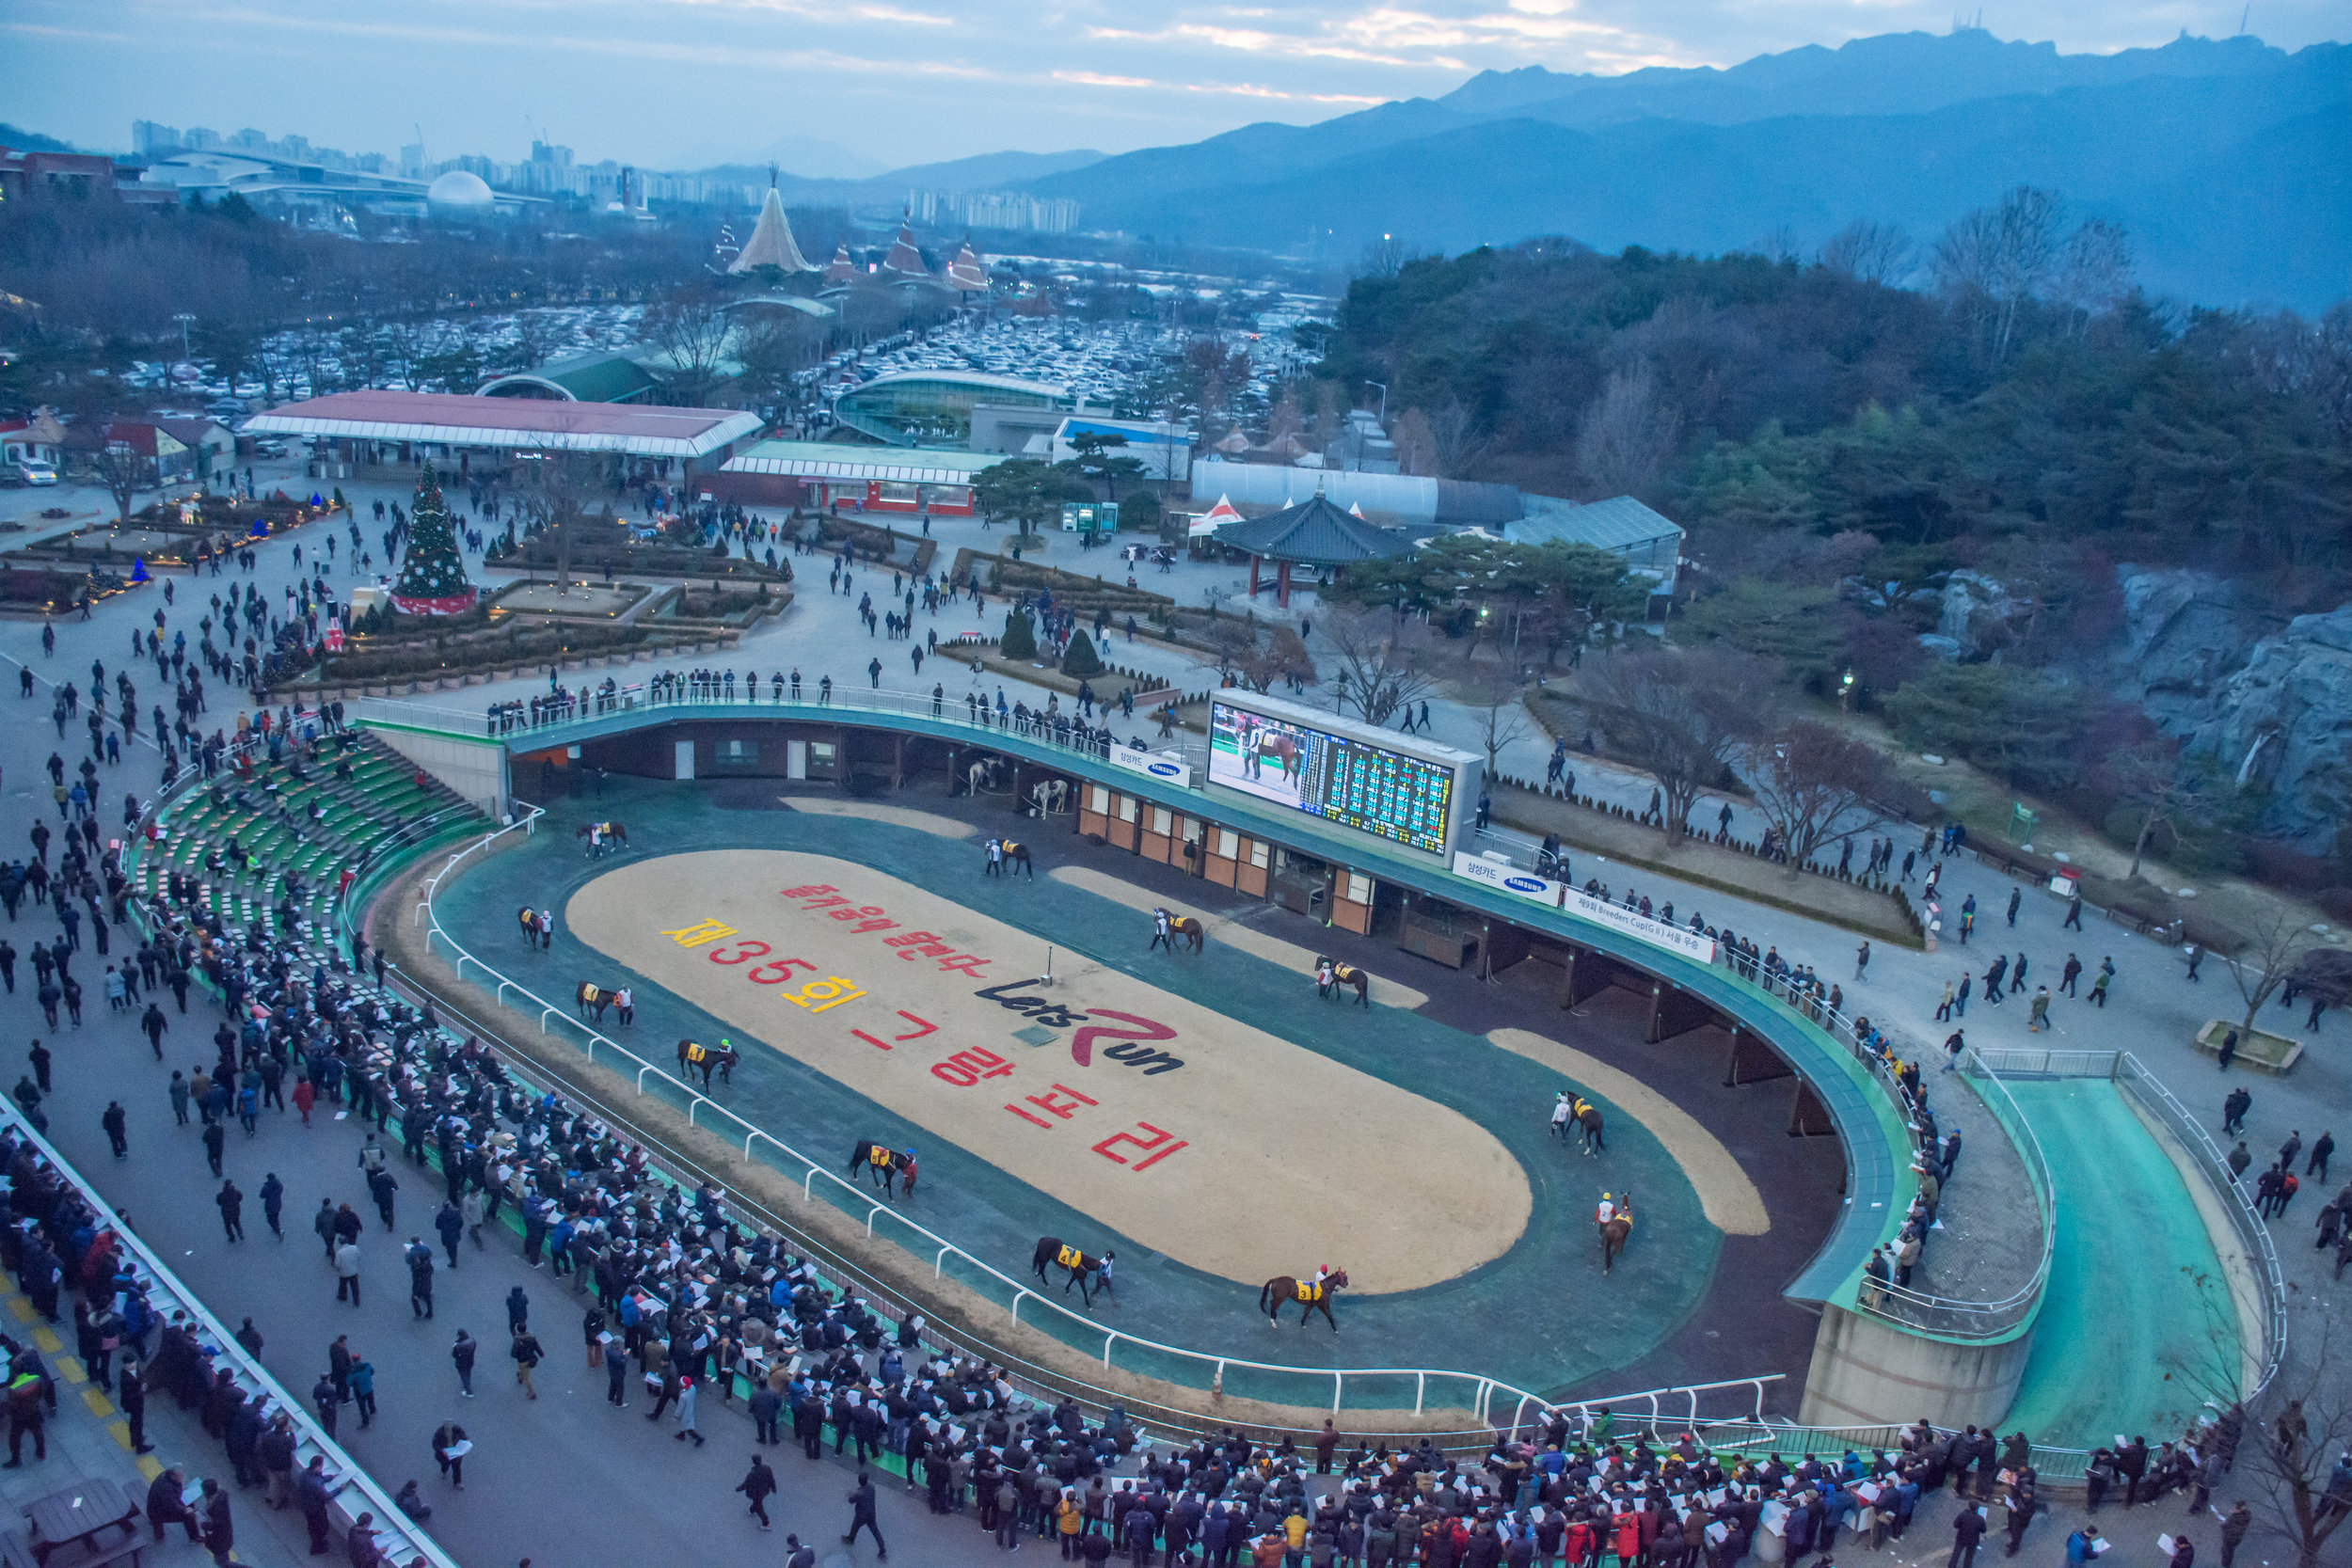 """Horseracing in South Korea:    A GLOBAL VISION      On the evening of January 19, 2017, something special happened in Dubai. To the casual spectator it might have seemed like any other horse race, but to viewers in the Republic of Korea, the 1200m District One Handicap at Meydan was a watershed moment in their nation's sporting history. The winner of this race was Main Stay, a four-year-old colt trained by Kim Young Kwan and the first Korean-trained horse to win at a significant international meeting since Thoroughbred horse racing was established in South Korea almost 100 years ago. What is more, the winner carried the (KOR) suffix in the racecard, underlining the fact that the country is now capable of producing internationally competitive Thoroughbreds.      Yet as Main Stay crossed the line on that fateful night, even switched-on racing enthusiasts and professionals with a broad international perspective may have asked, """"So they race in Korea?""""      Indeed, this otherwise significant nation's racing industry remains relatively unknown across the globe. Recent developments have brought Korean racing into the spotlight however, and notable domestic and international expansion projects put in place by the Korea Racing Authority (KRA) could soon see it established as an influential player on the global racing scene.      CONTEXT    In sporting terms, South Korea would most commonly be associated with taekwondo, baseball, soccer, or even figure skating. Yet horseracing is in fact the country's second most popular spectator sport after baseball, with annual attendance of over 15 million. What is more, betting turnover stands at around $6.5 billion USD per annum, the seventh-highest in the world, meaning that horseracing in Korea already boasts figures that some of the most celebrated racing nations can only dream of.      Despite massive obstacles such as Japanese occupation (1910-1945), partition (1945), the Korean War (1950-53), and an ongoing state of tension with """